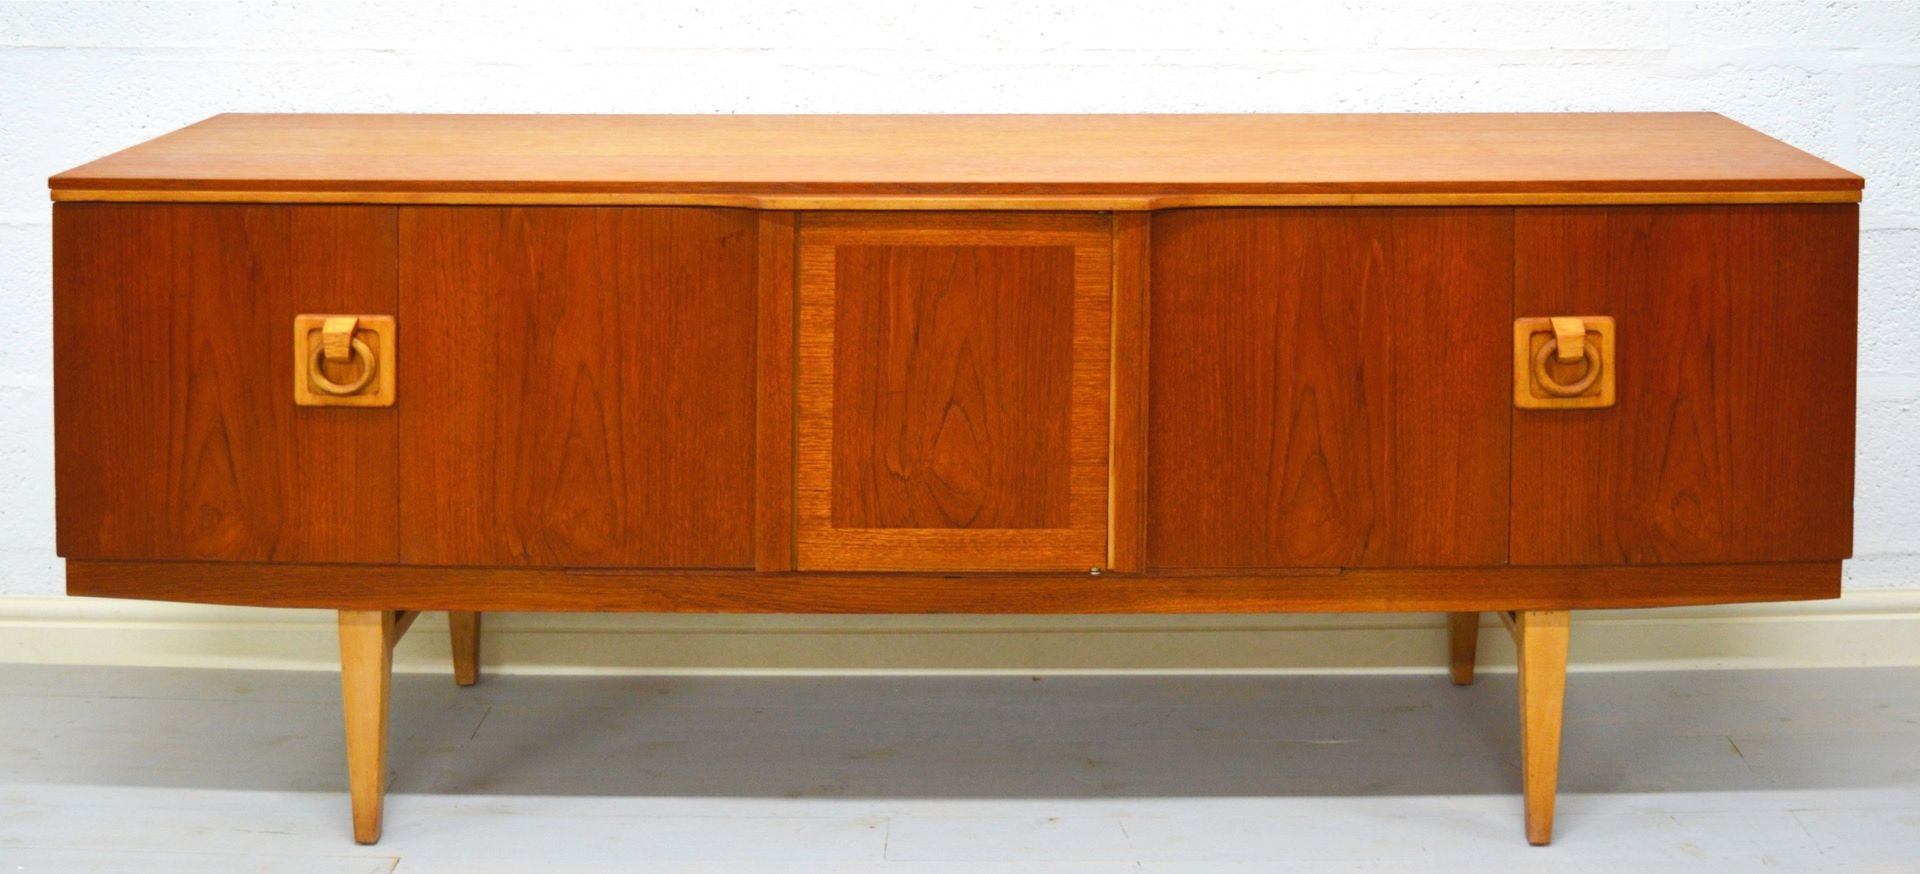 Mid Century Teak Sideboard With Liquor Cabinet For Sale At